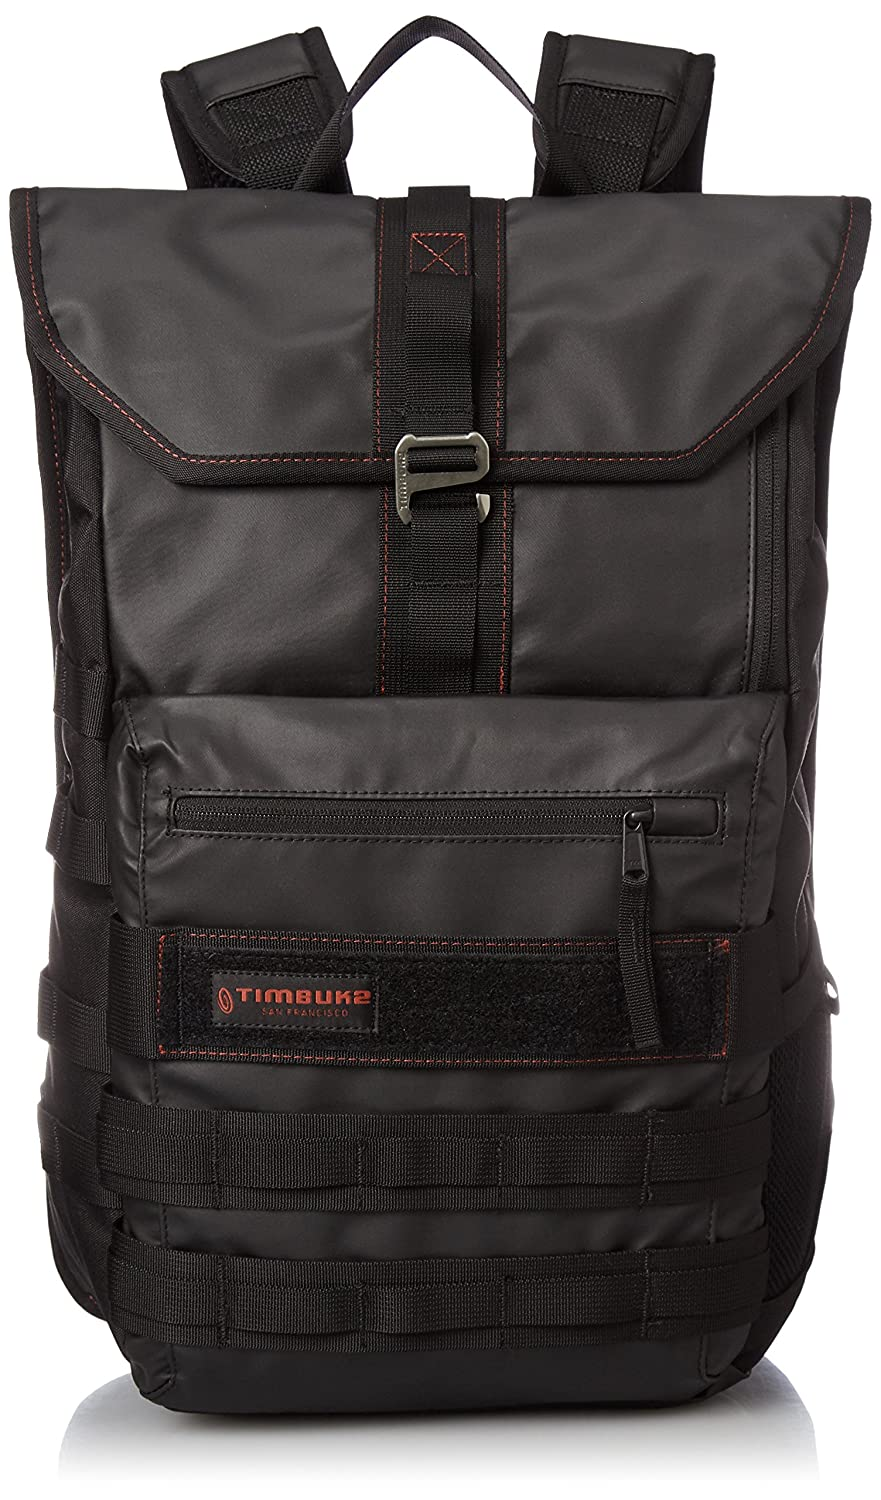 3350a7153a Timbuk2 Spire Laptop Backpack - Buy Timbuk2 Spire Laptop Backpack Online at  Low Price in India - Amazon.in